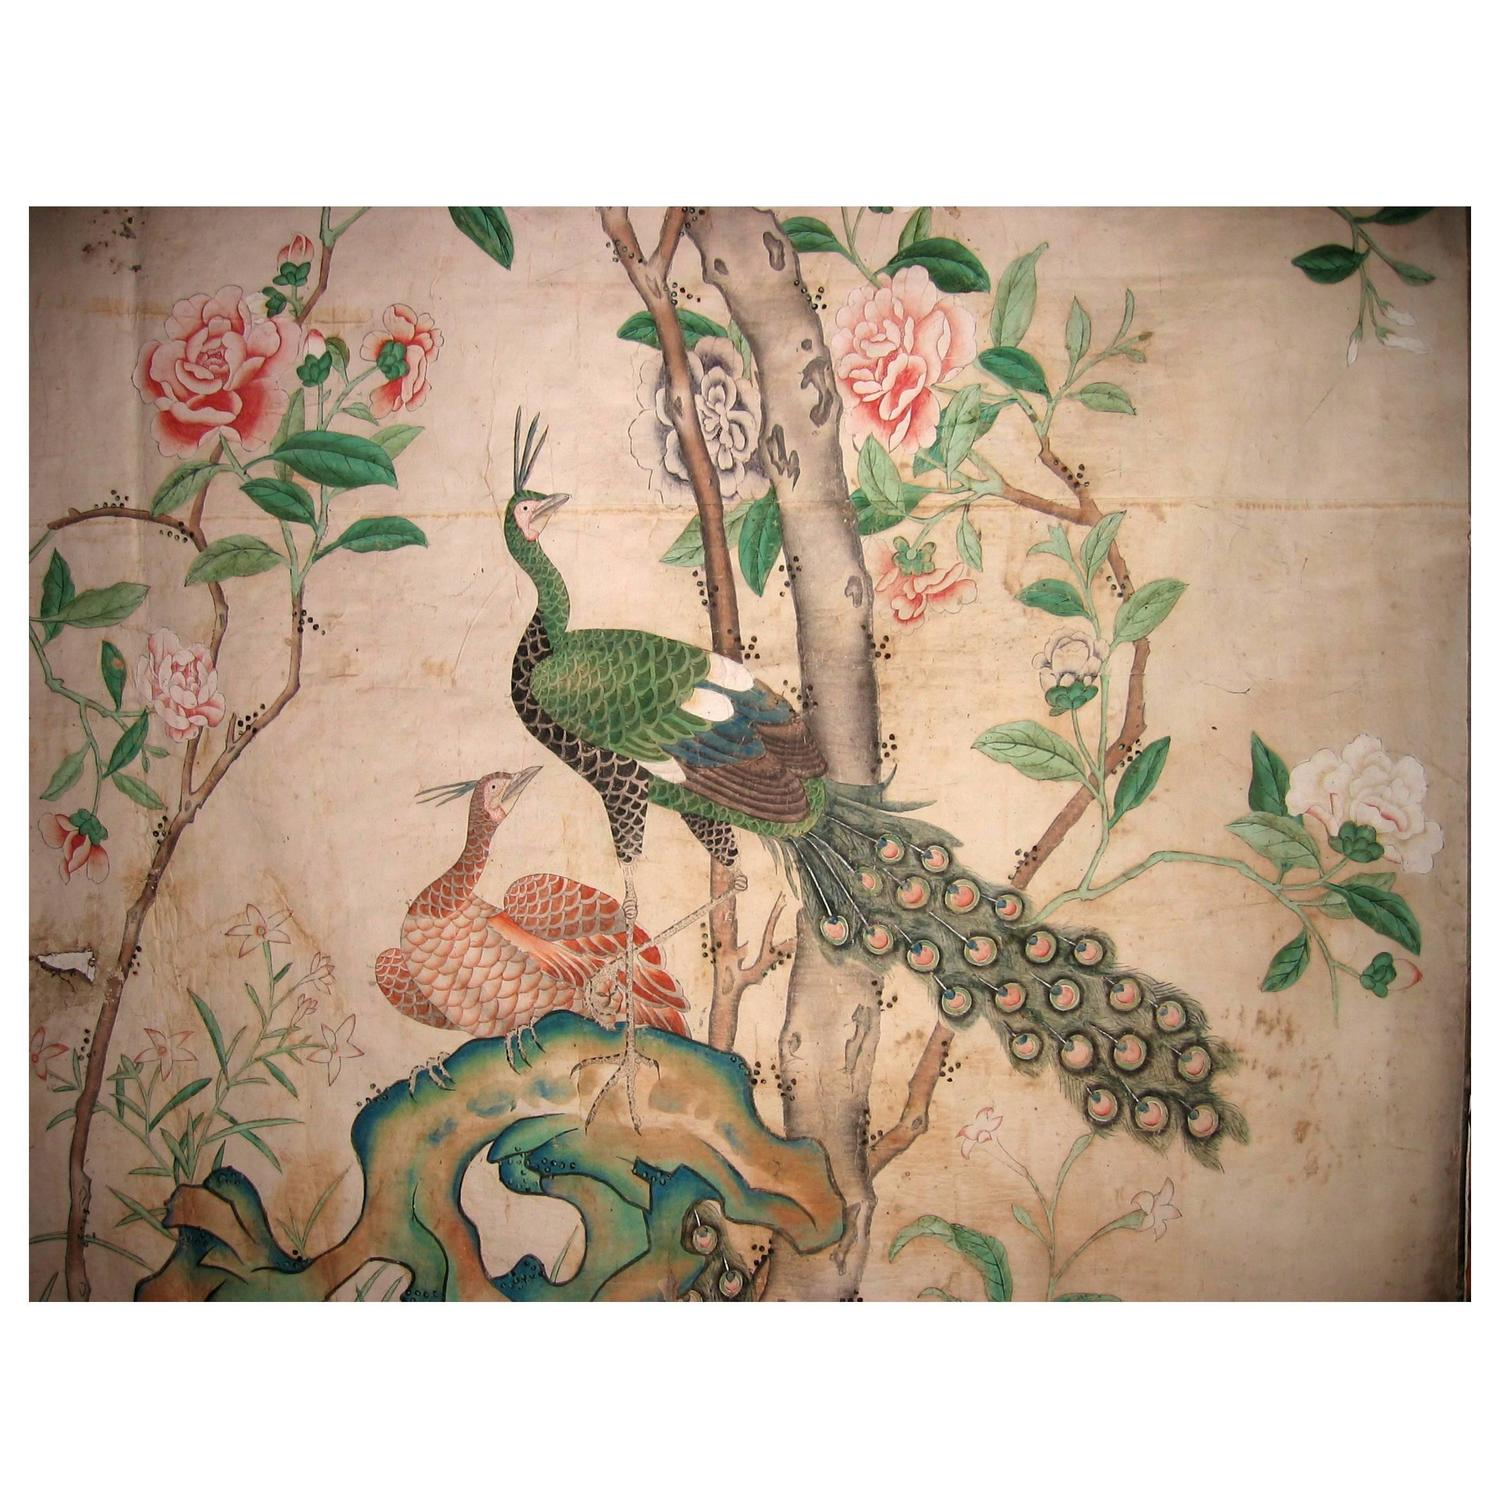 Exquisite Wall Coverings From China: 12 Antique And Rare Chinese Wallpapers Panels For Sale At